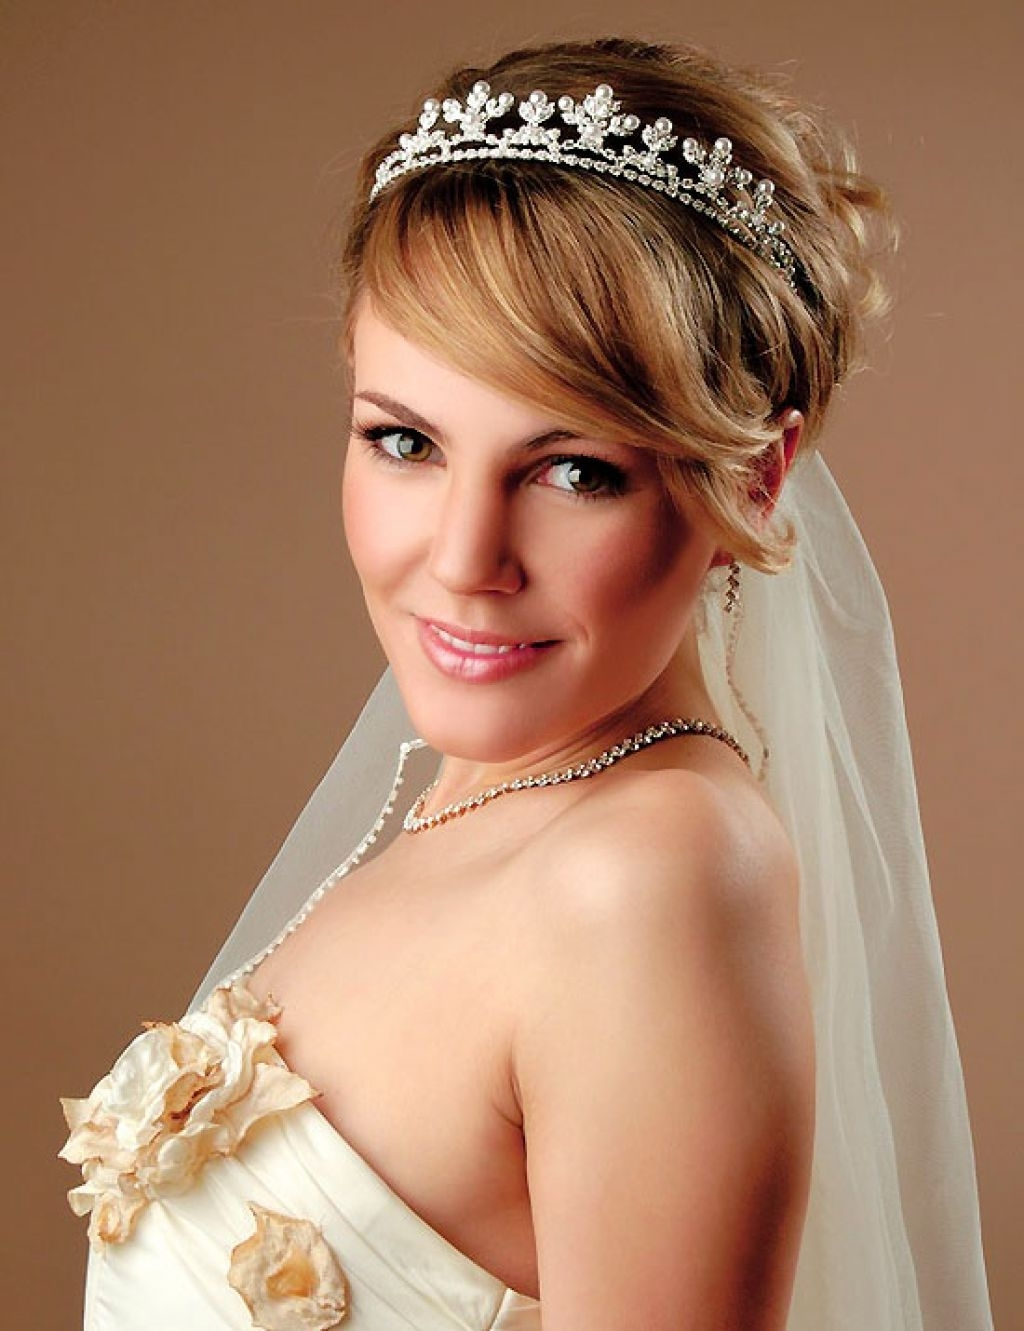 Most Recently Released Wedding Hairstyles For Short Hair And Bangs With Regard To Hairstyles : Wedding Hairstyles For Short Hair With Bangs Best (View 11 of 15)